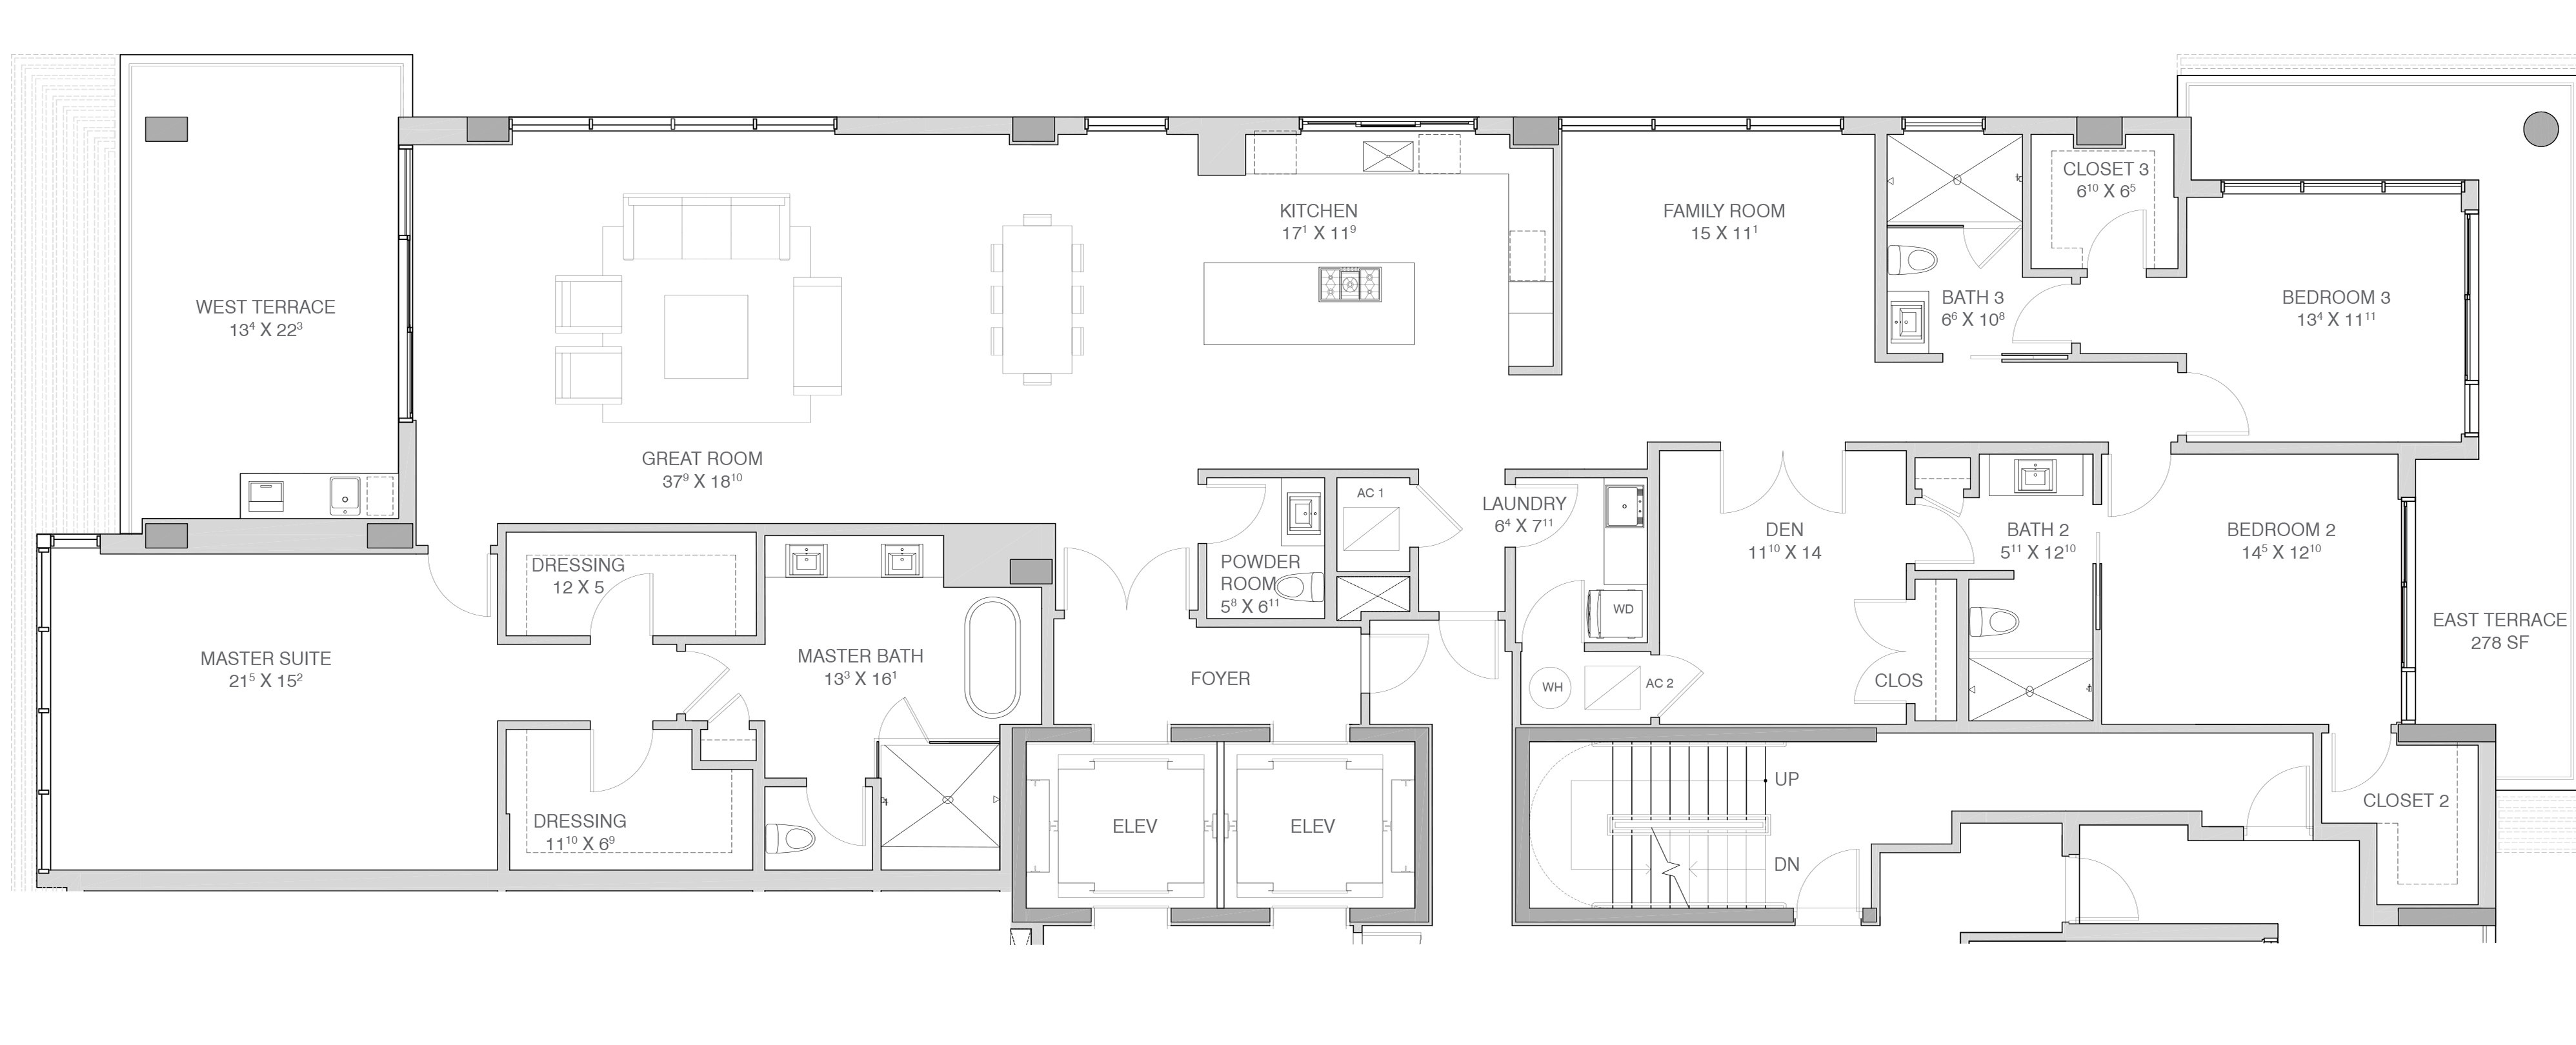 Adagio Fort Lauderdale Beach - Floorplan 4